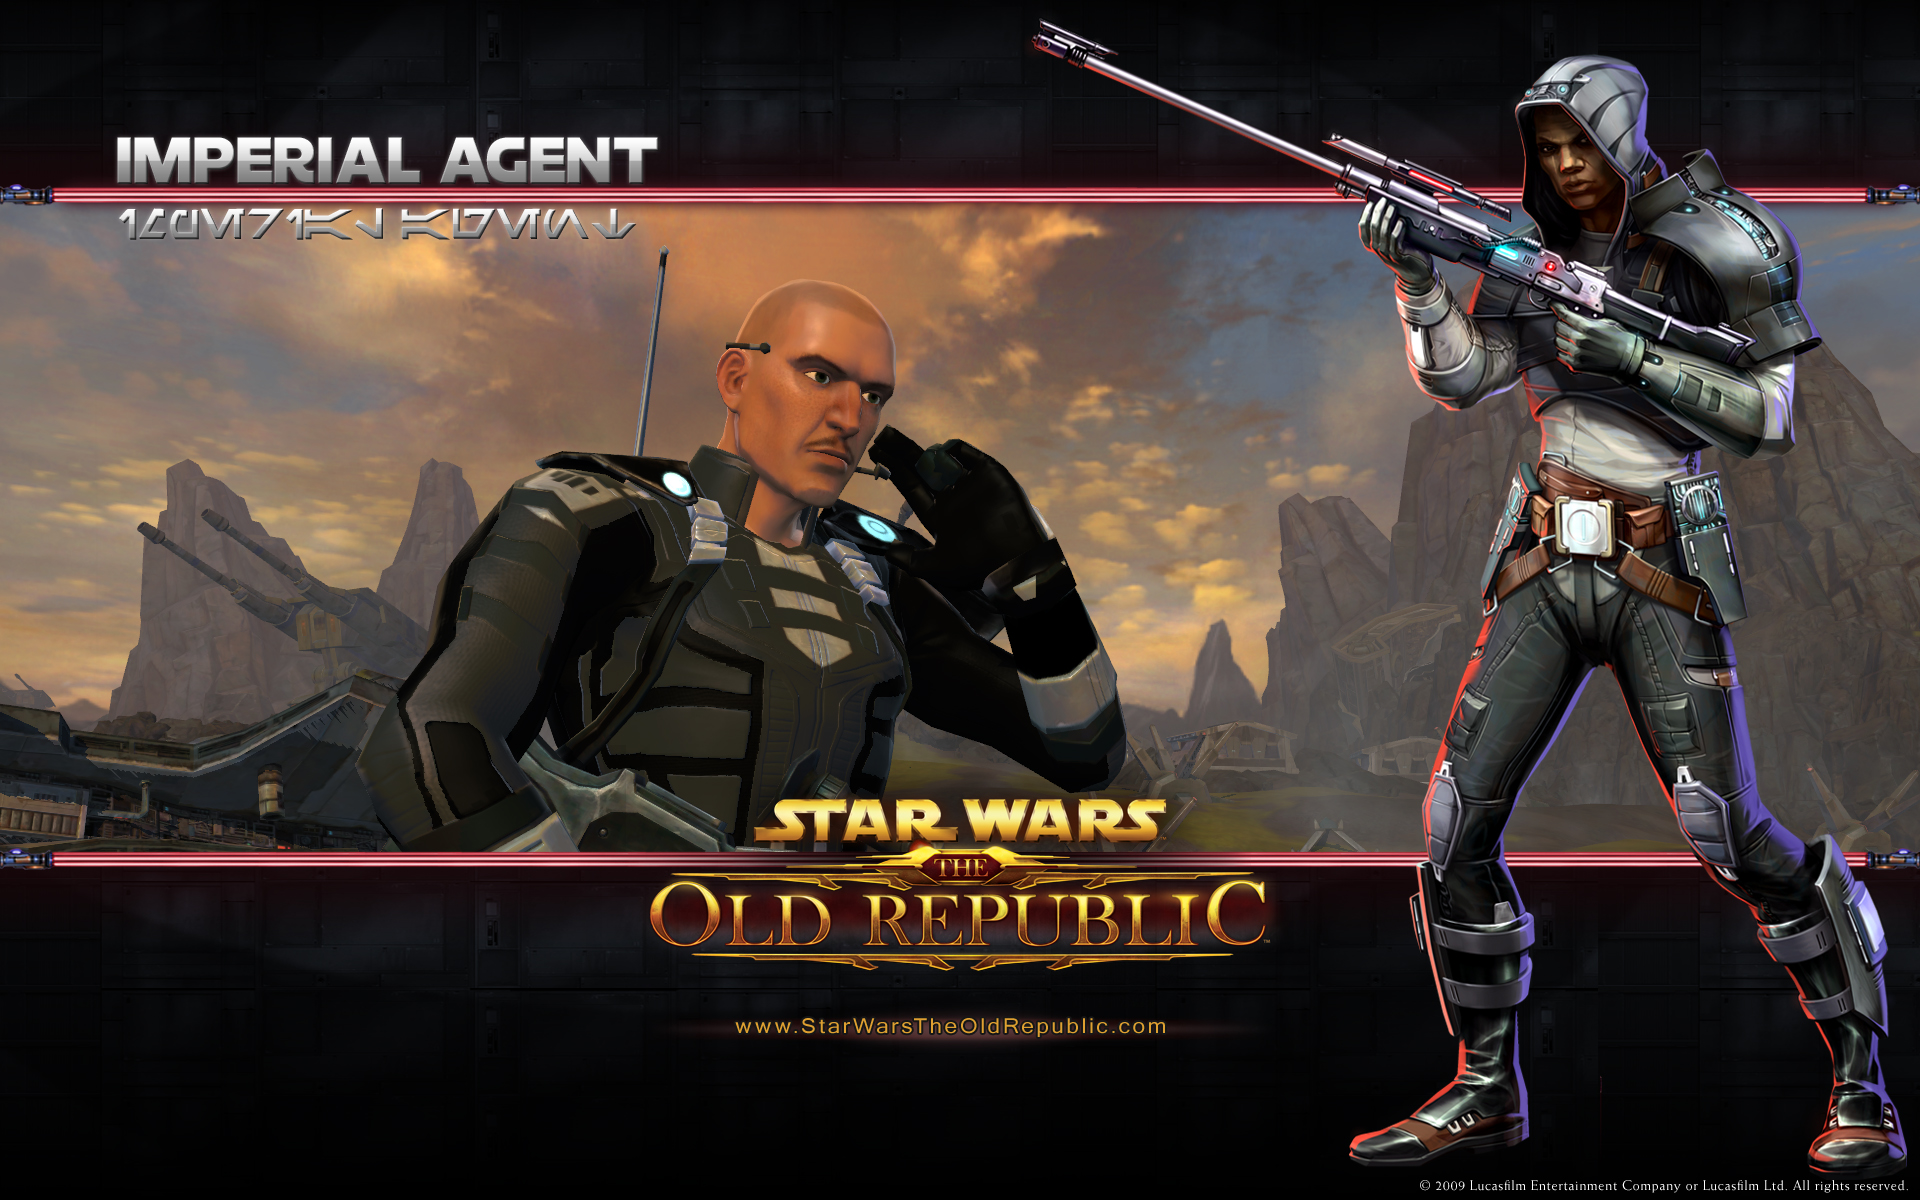 imperialagent02 wallpaper swtor 1920x1200